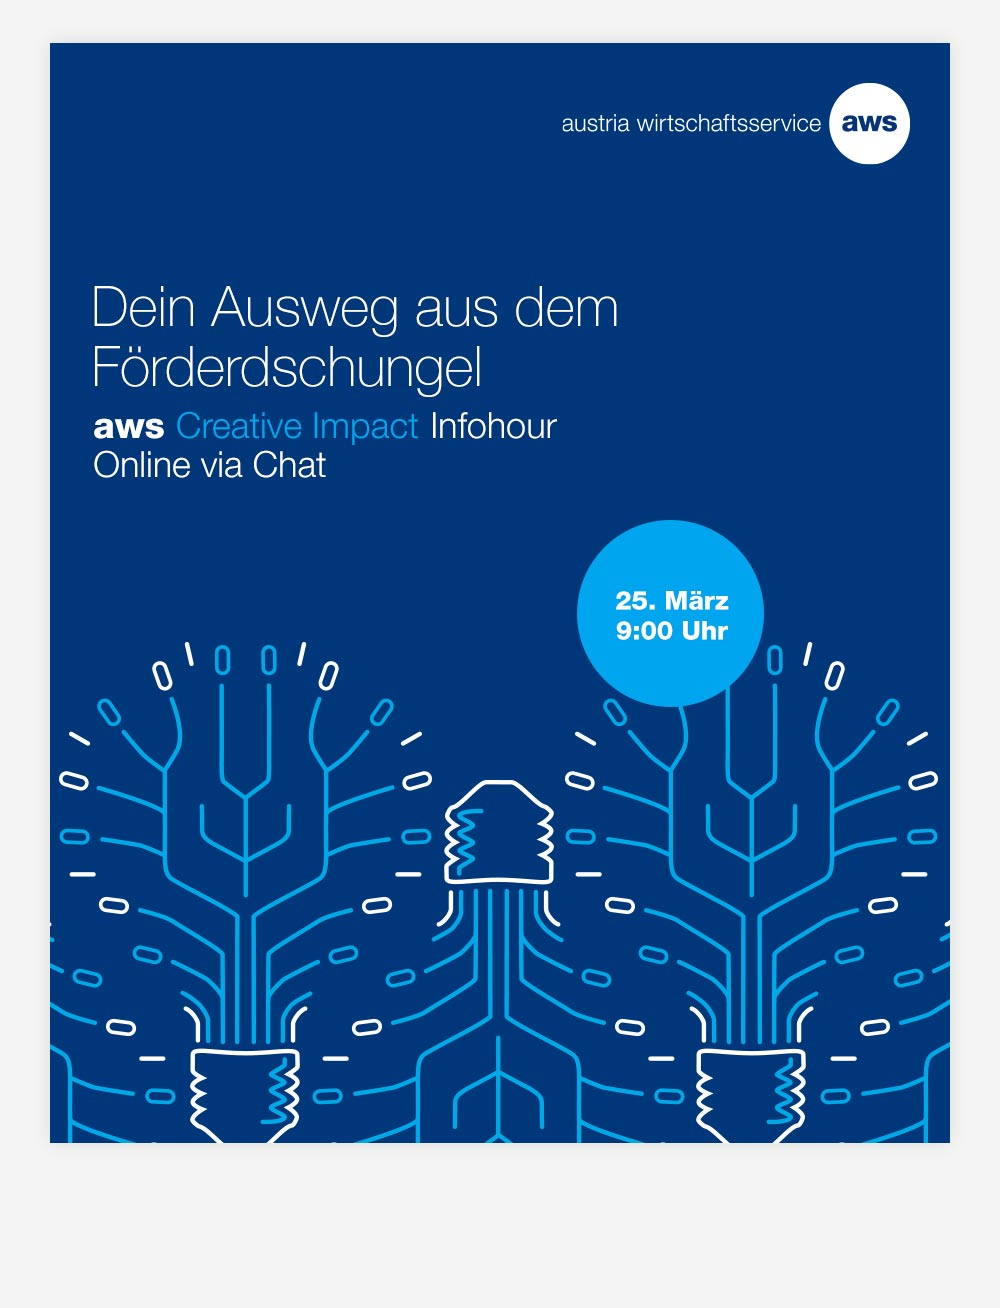 aws Creative Impact Facebook C21 new media design Wien Online Agentur Webagentur Digitalagentur